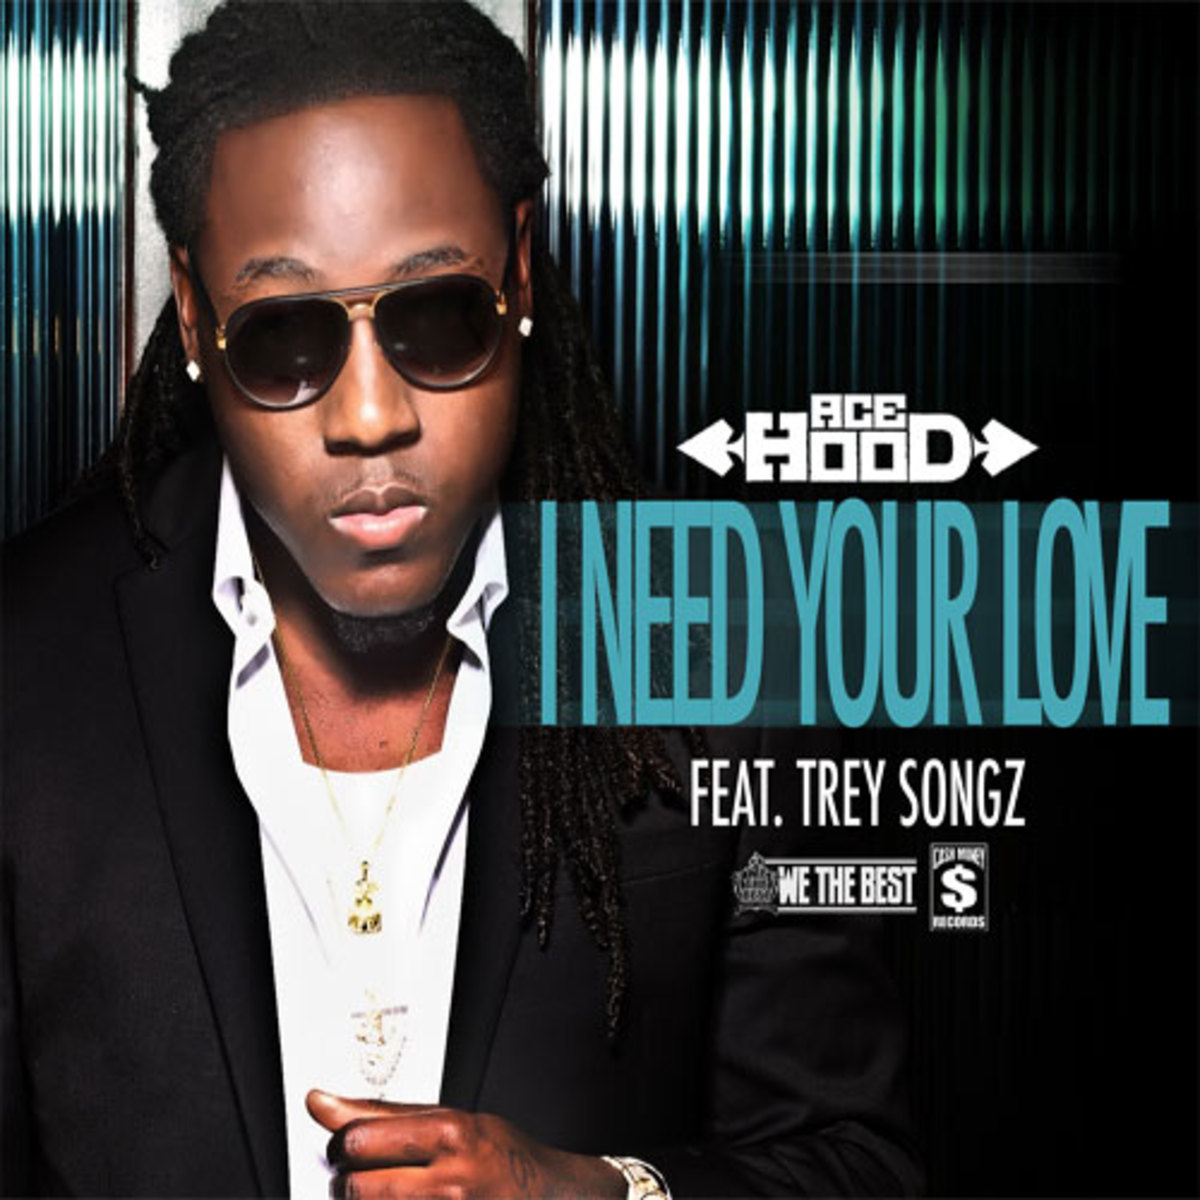 acehood-needyourlove.jpg